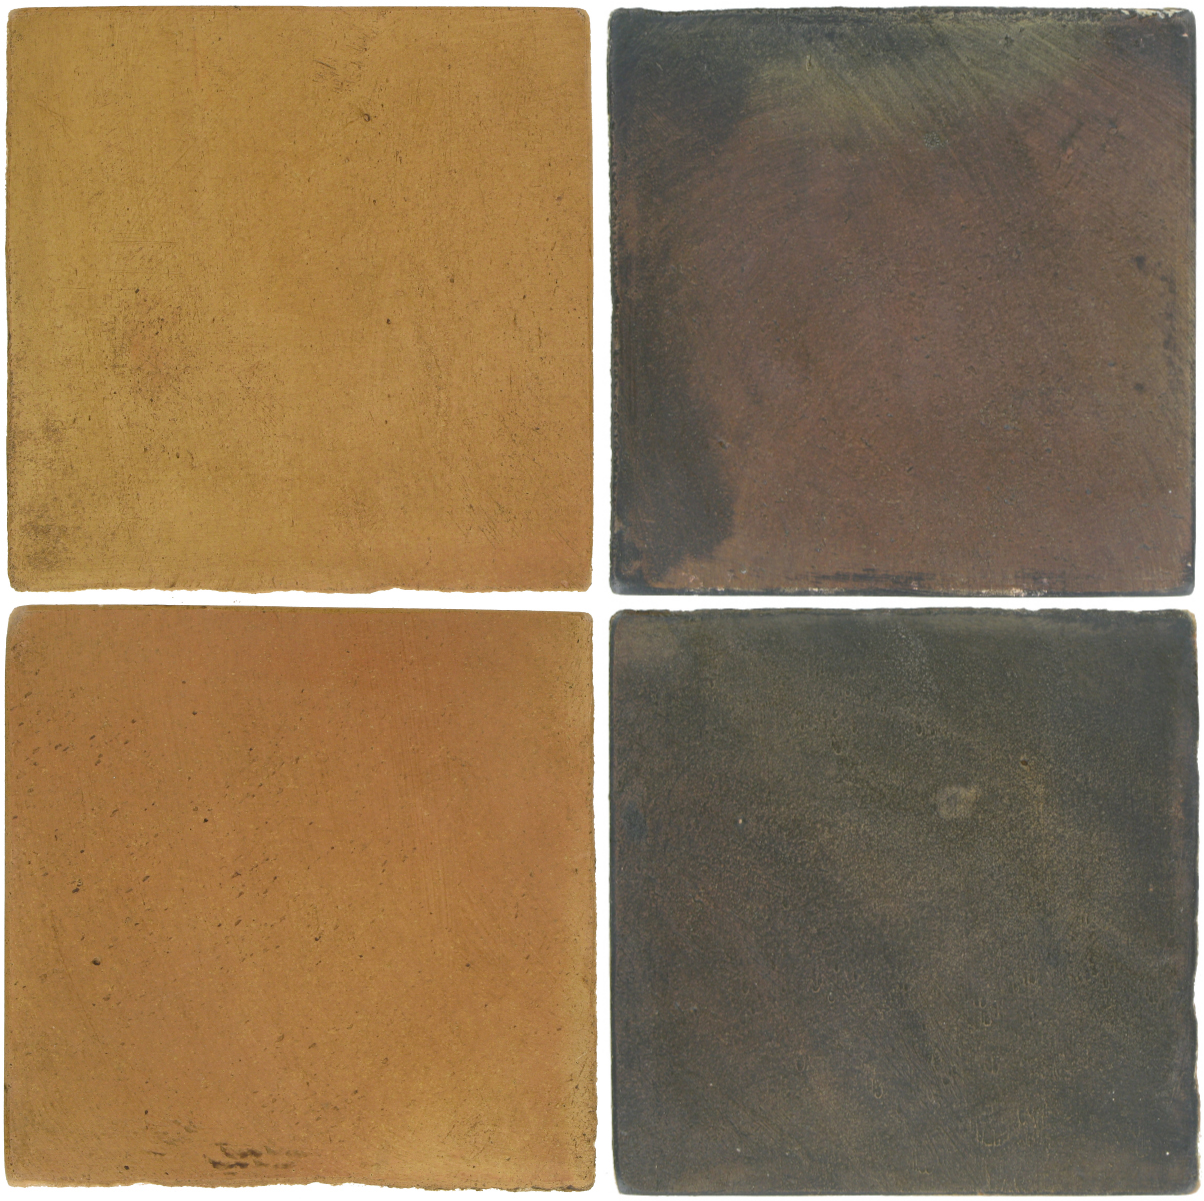 Pedralbes Antique Terracotta  2 Color Combinations  OHS-PSSW Siena Wheat + OHS-PSTG Terra Grey